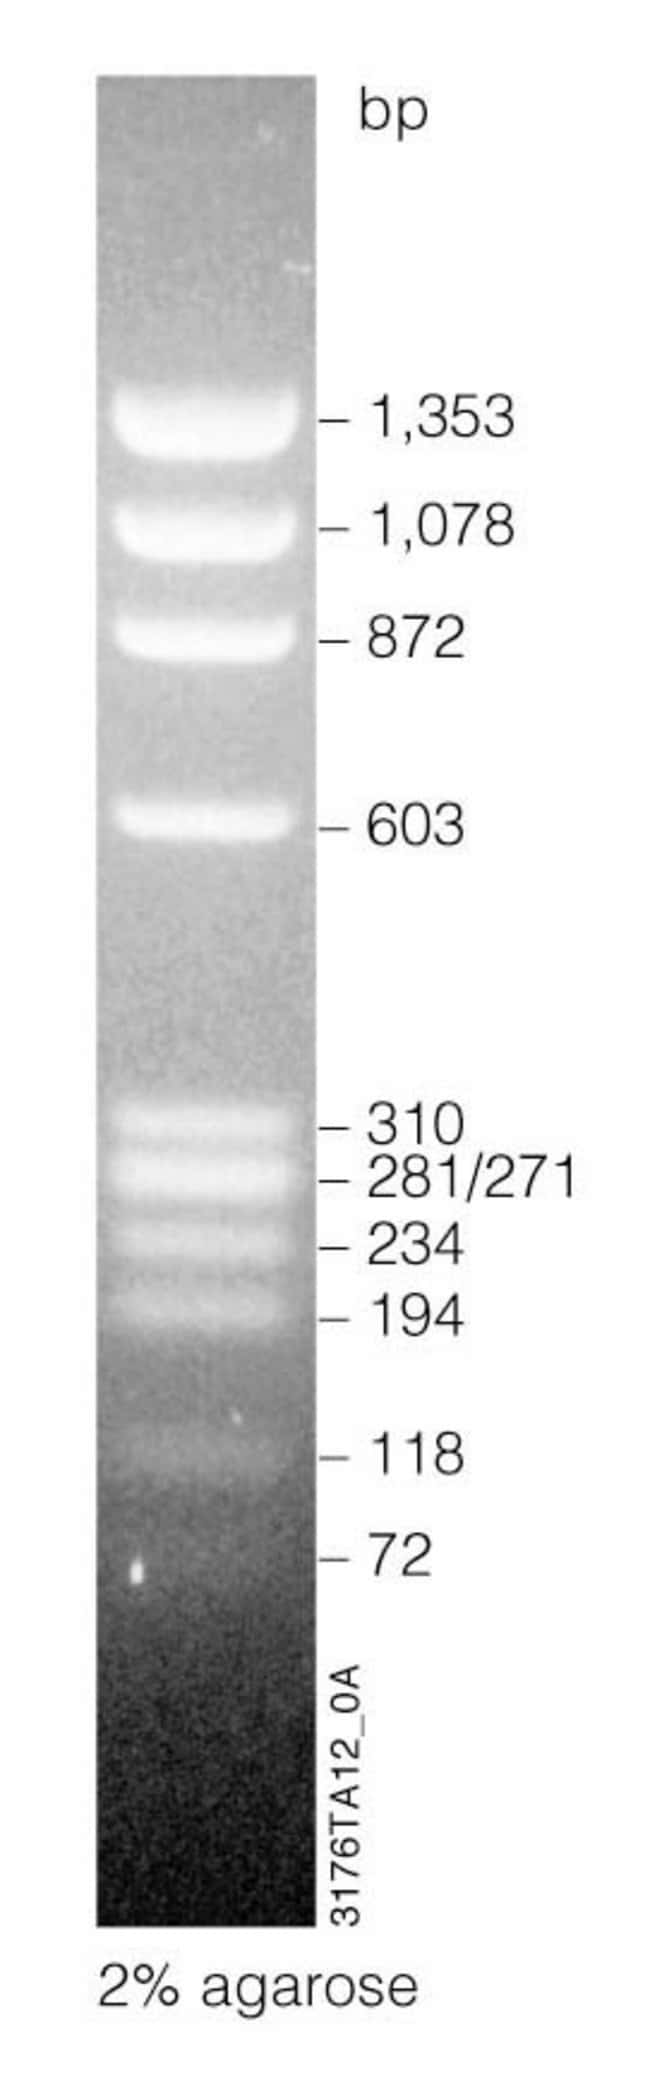 Promega BenchTop DNA Markers:Life Sciences:Biochemicals and Reagents